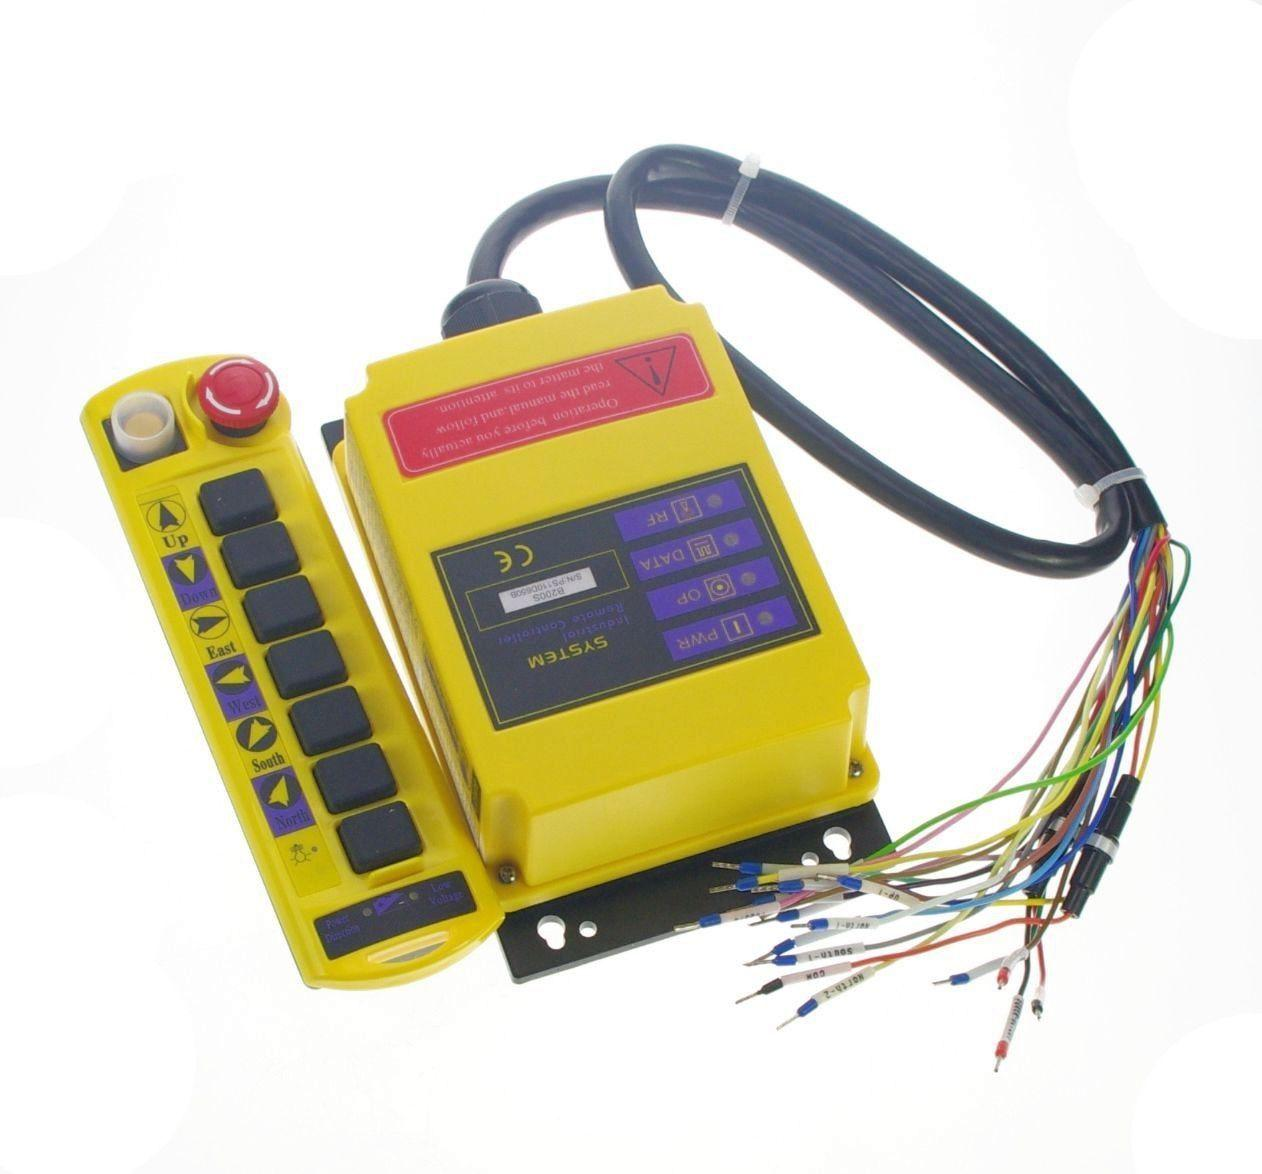 1 Speed 1 Transmitter Control Hoist Crane Radio Remote Control System Controller CE 12V 24V AC/DC 110V 220V 380V,415VAC nice uting ce fcc industrial wireless radio double speed f21 4d remote control 1 transmitter 1 receiver for crane